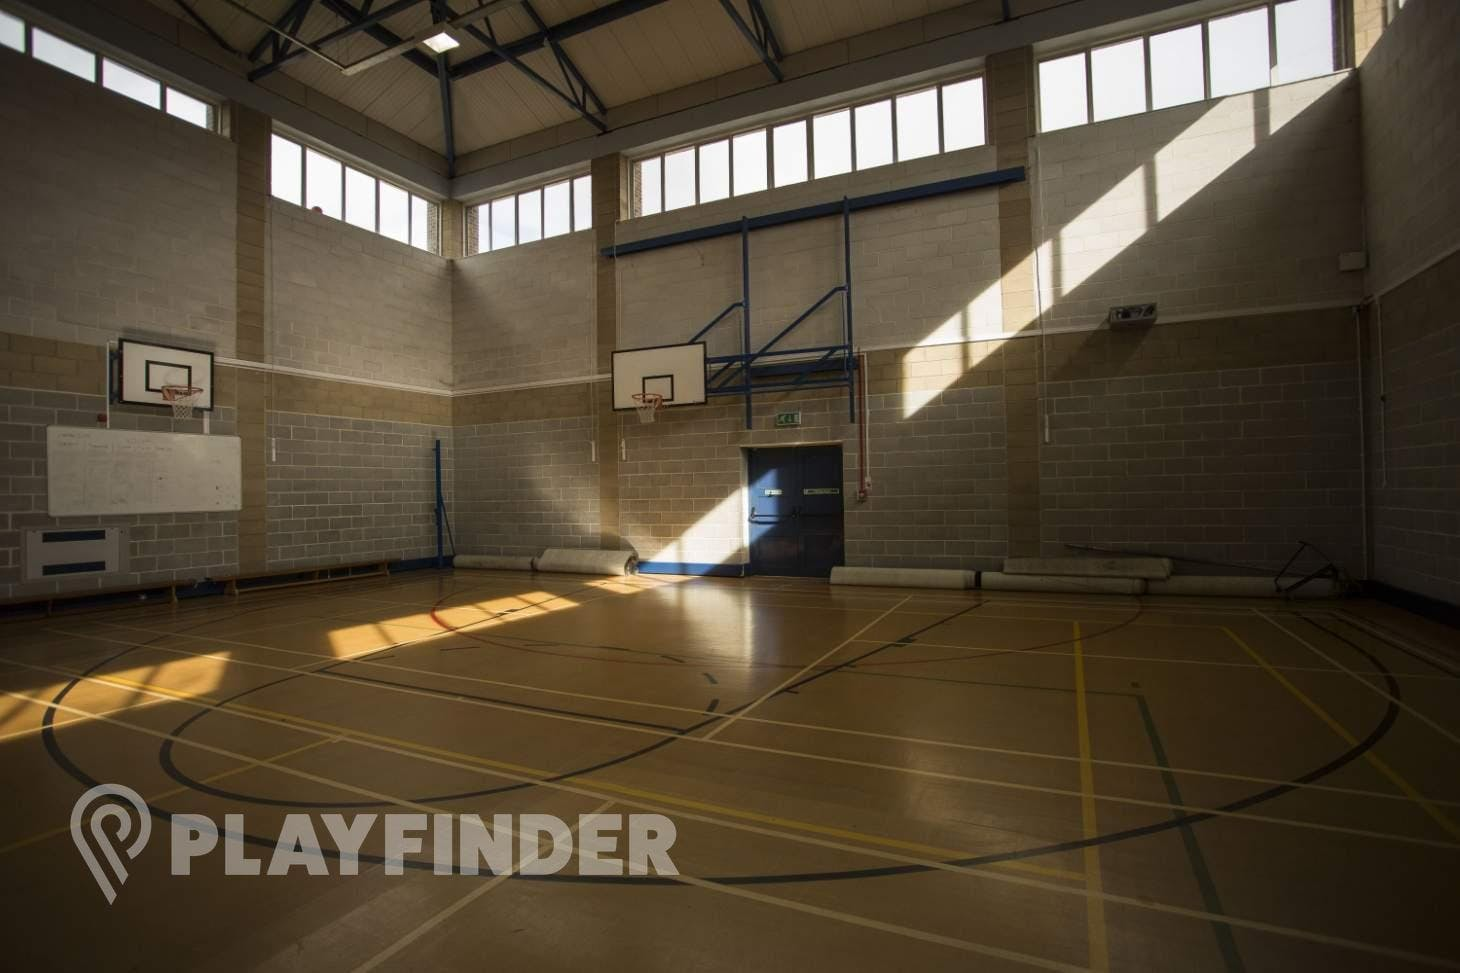 Copthall School Indoor basketball court